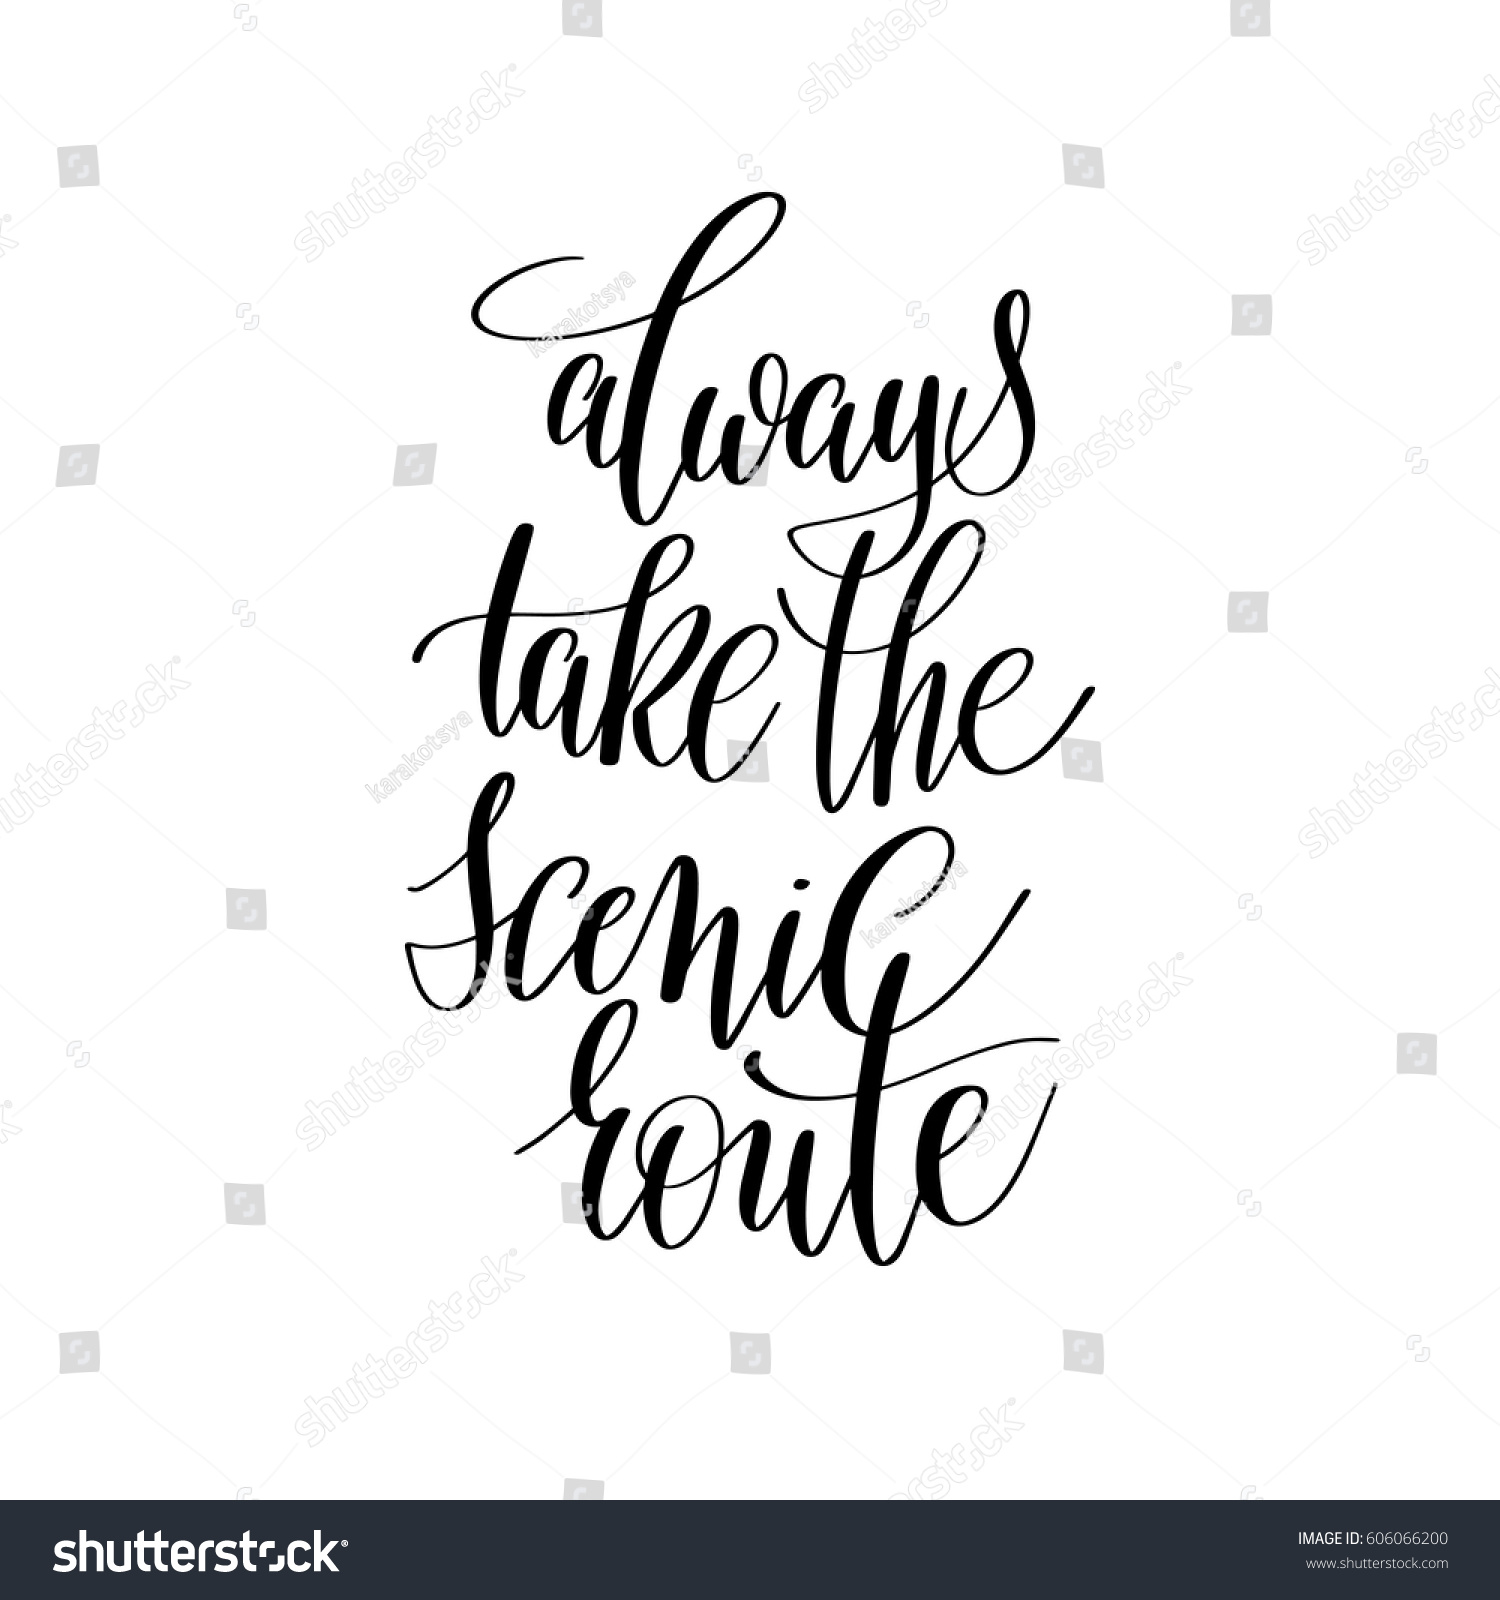 Scenic quotes daily inspirational quotations and sayings on - Always Take The Scenic Route Inspirational Quote About Summer Travel Positive Journey Phrase To Poster